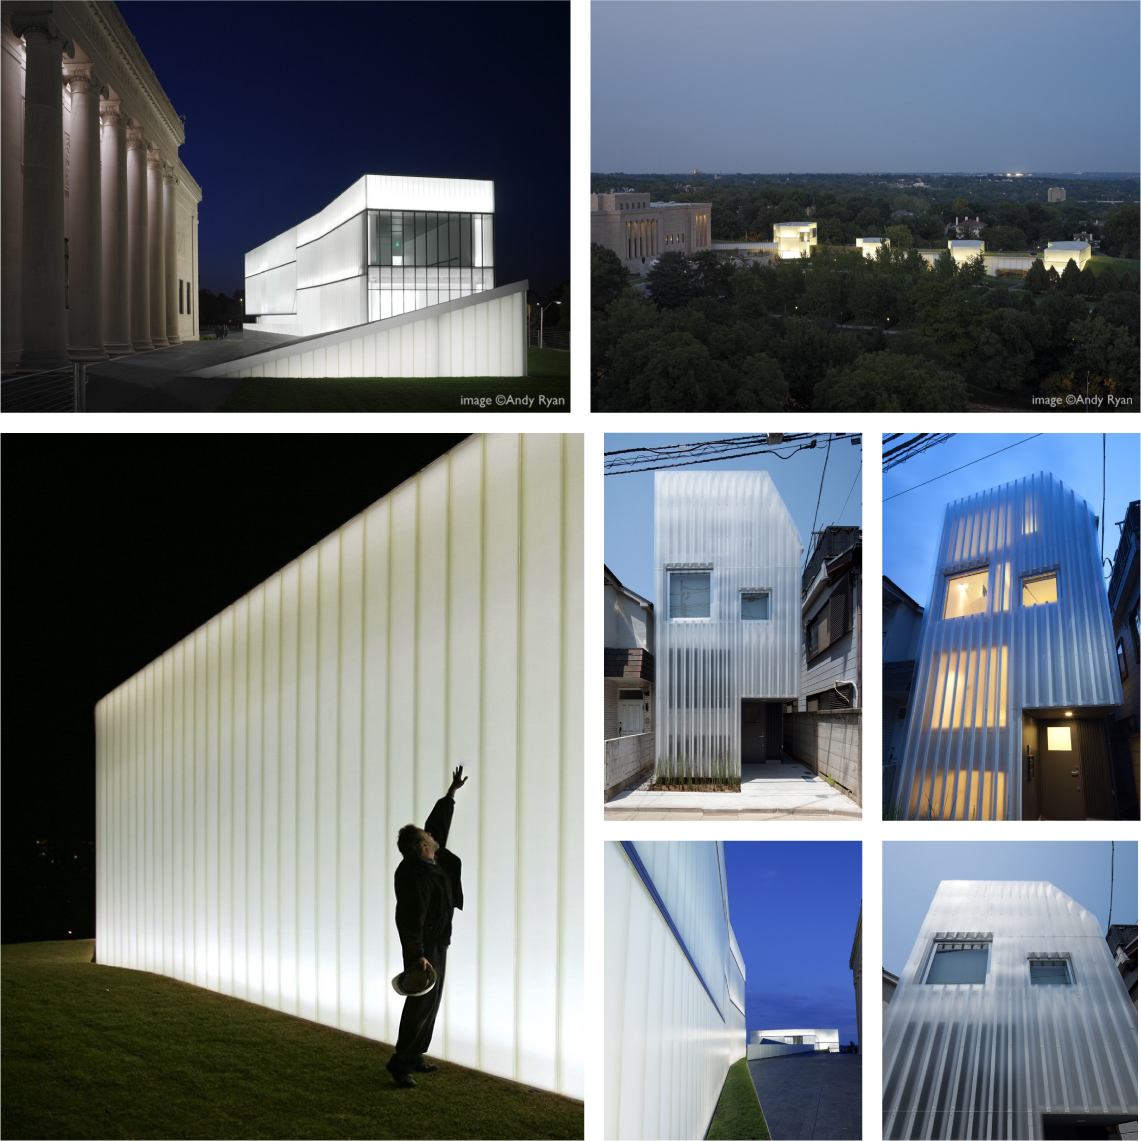 Materials Inspiration for Photorealistic Architectural Renders